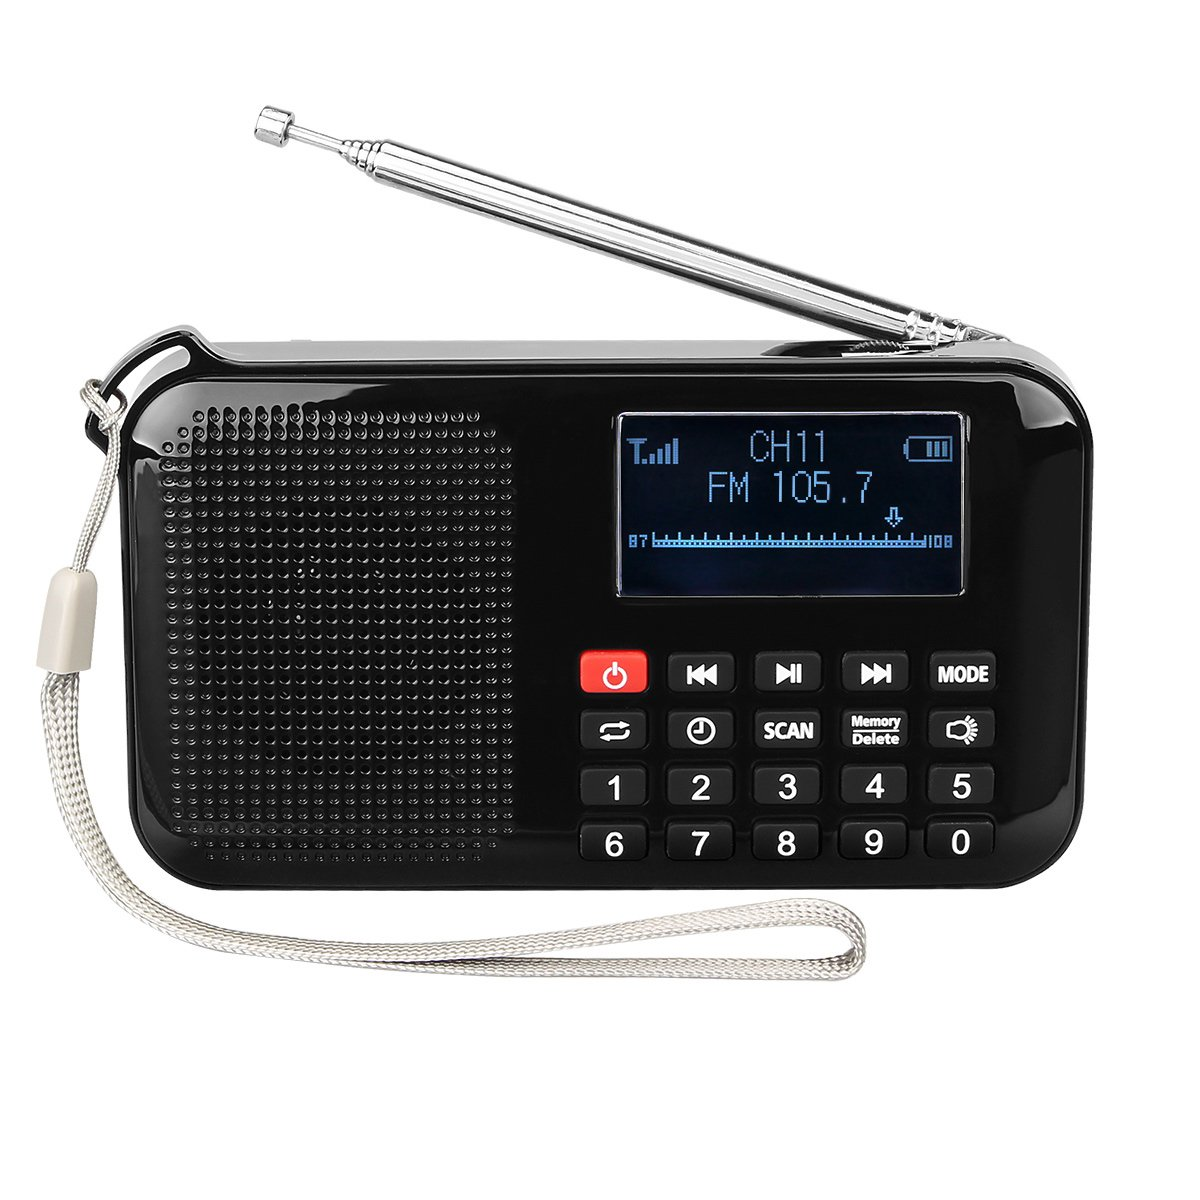 Retekess Portable L-388 FM Radio Solar Powered MP3 Player Speaker support USB disk TF card with Flashlight Sleep Timer Charger to the Phone(Black)